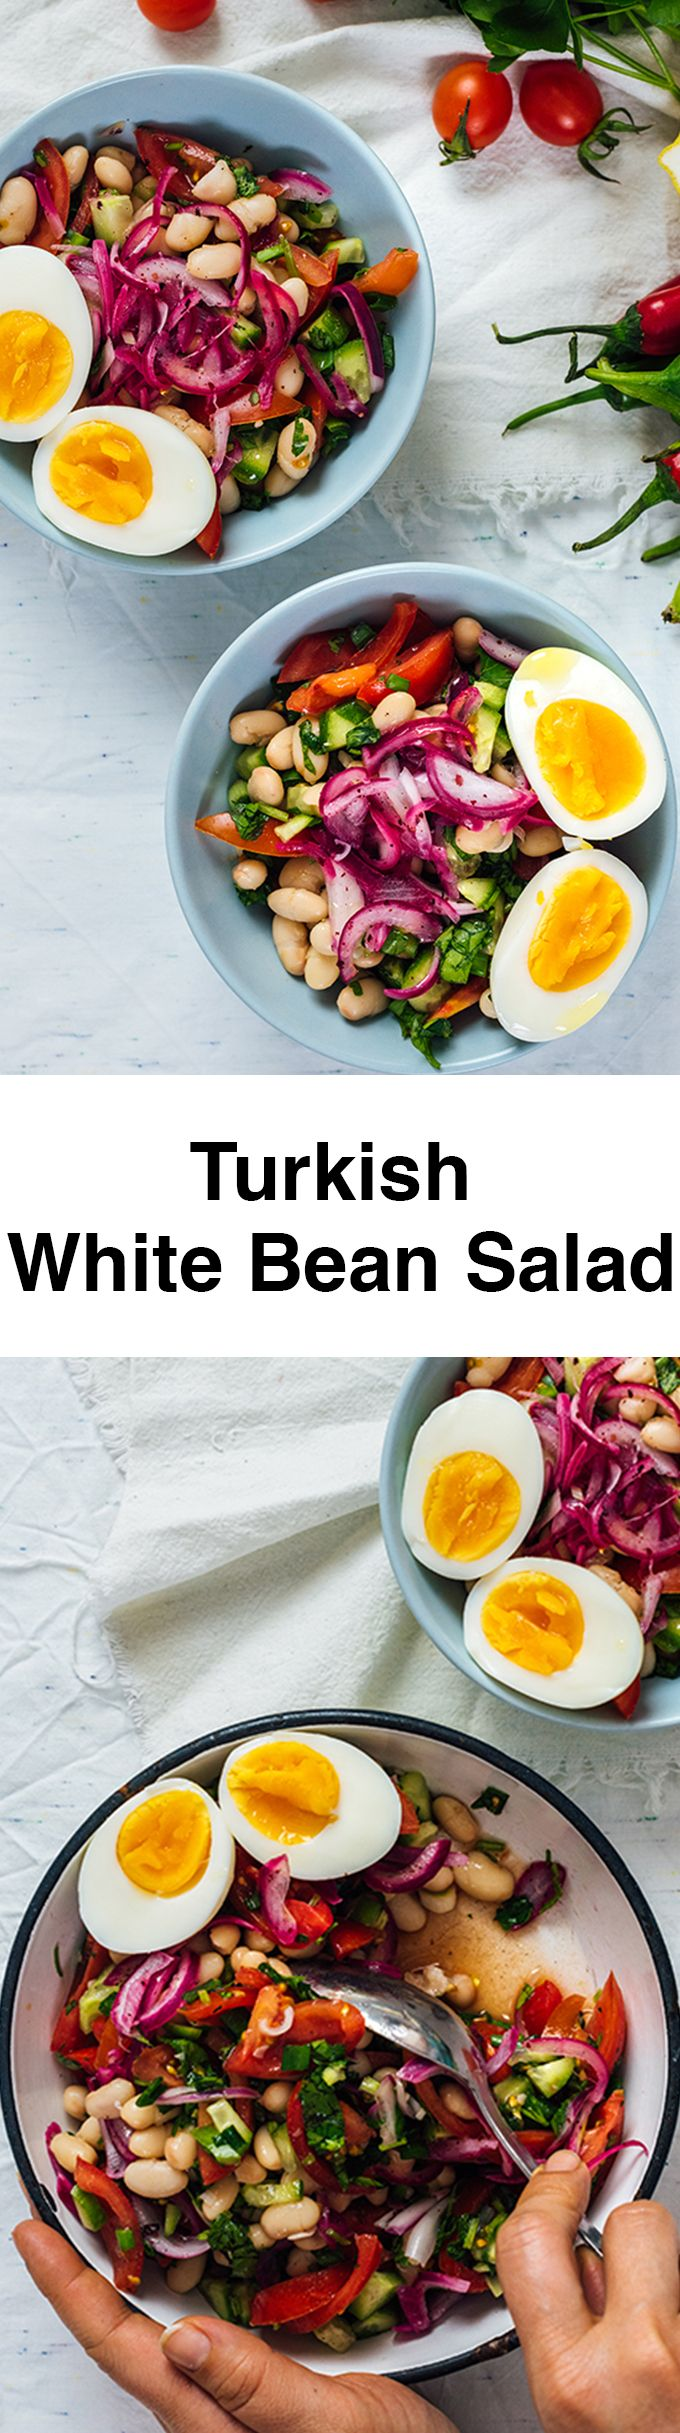 Turkish White Bean Salad is super healthy and easy to make with some simple ingredients. Packed with flavors and protein, this salad makes a wonderful vegetarian dish.